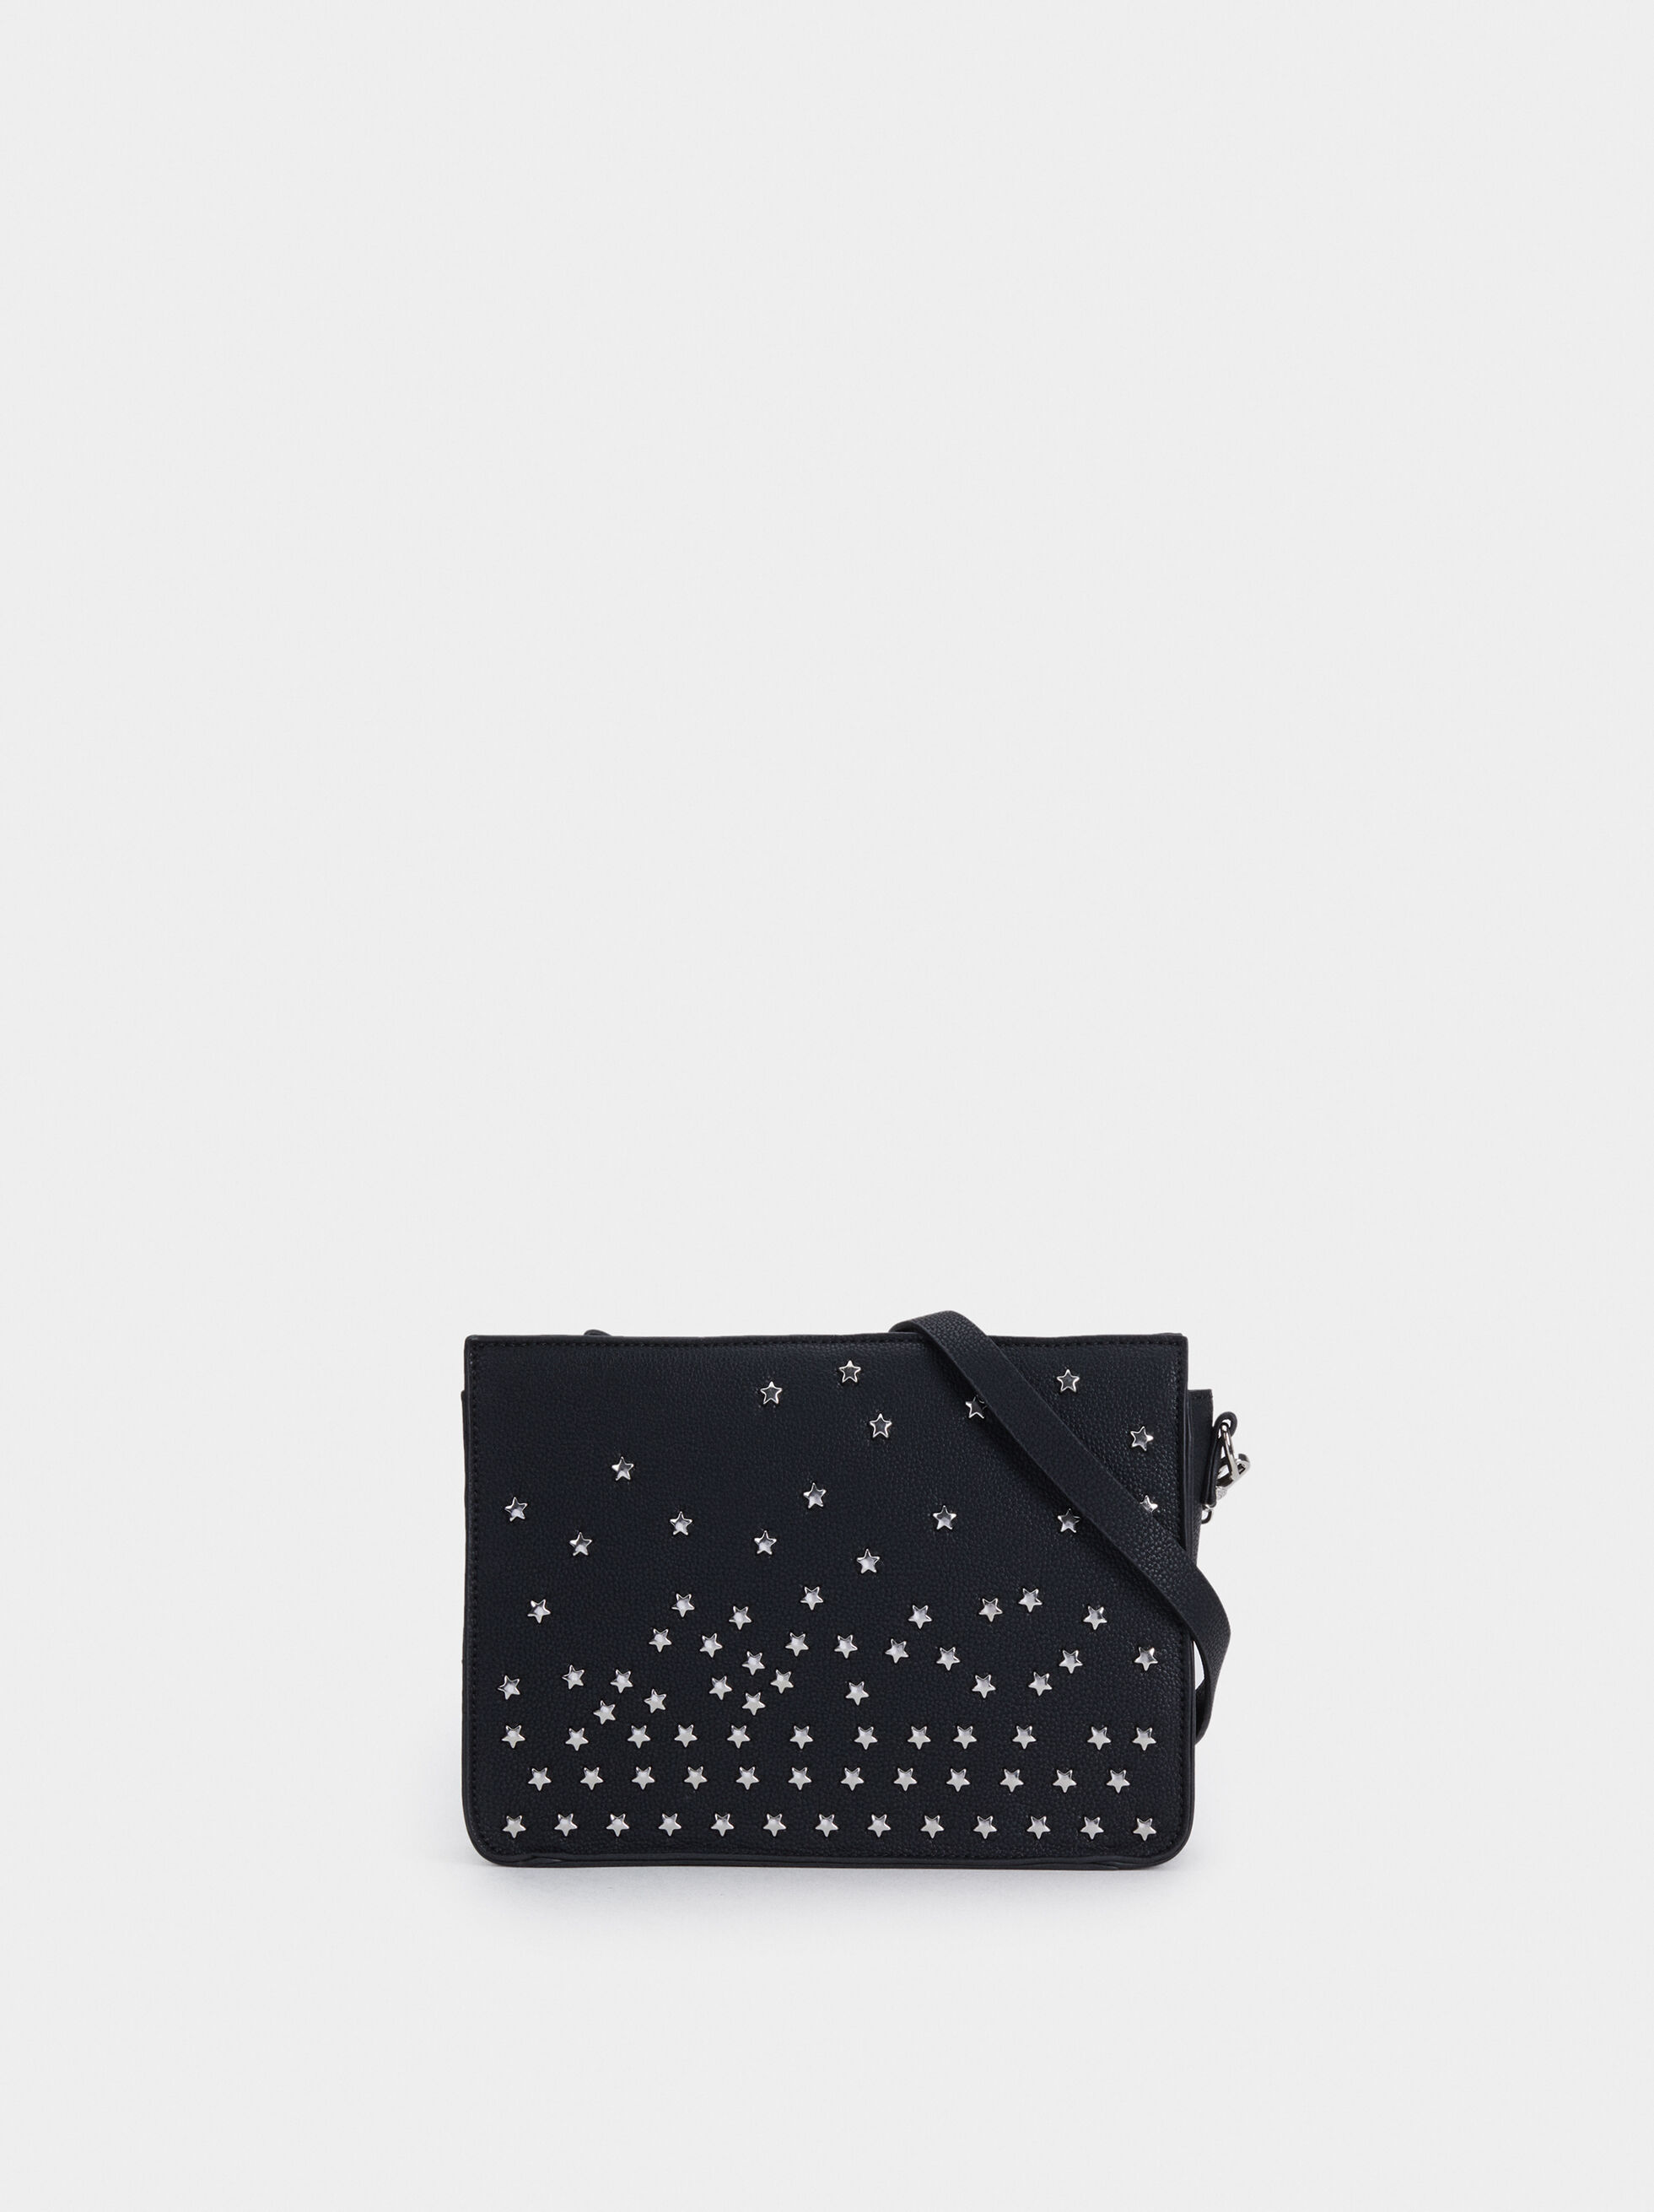 Thunder Cosmetic Purse, Black, hi-res